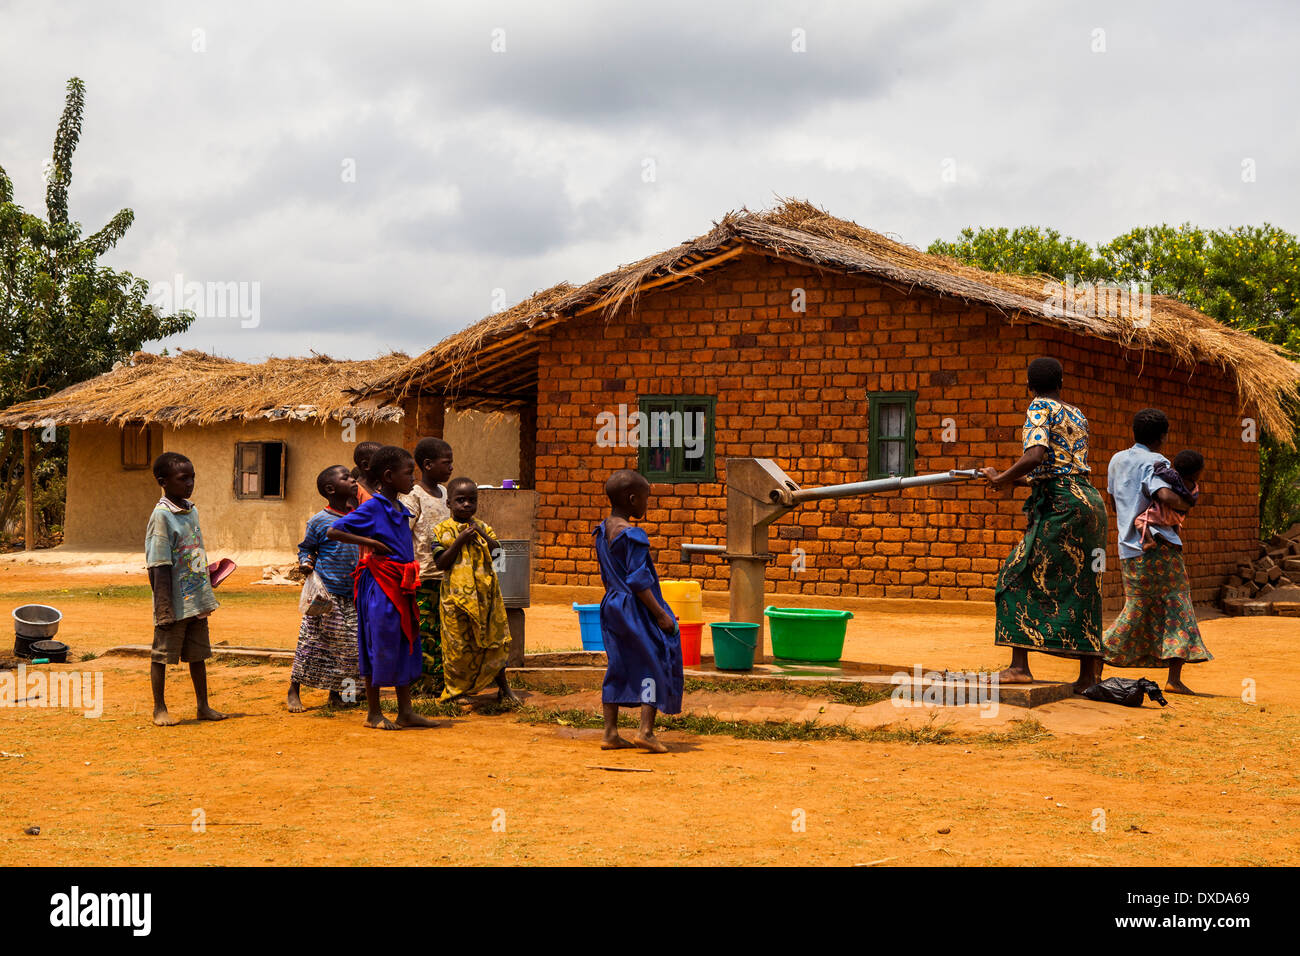 African villagers collect water at a communal water pump - Stock Image